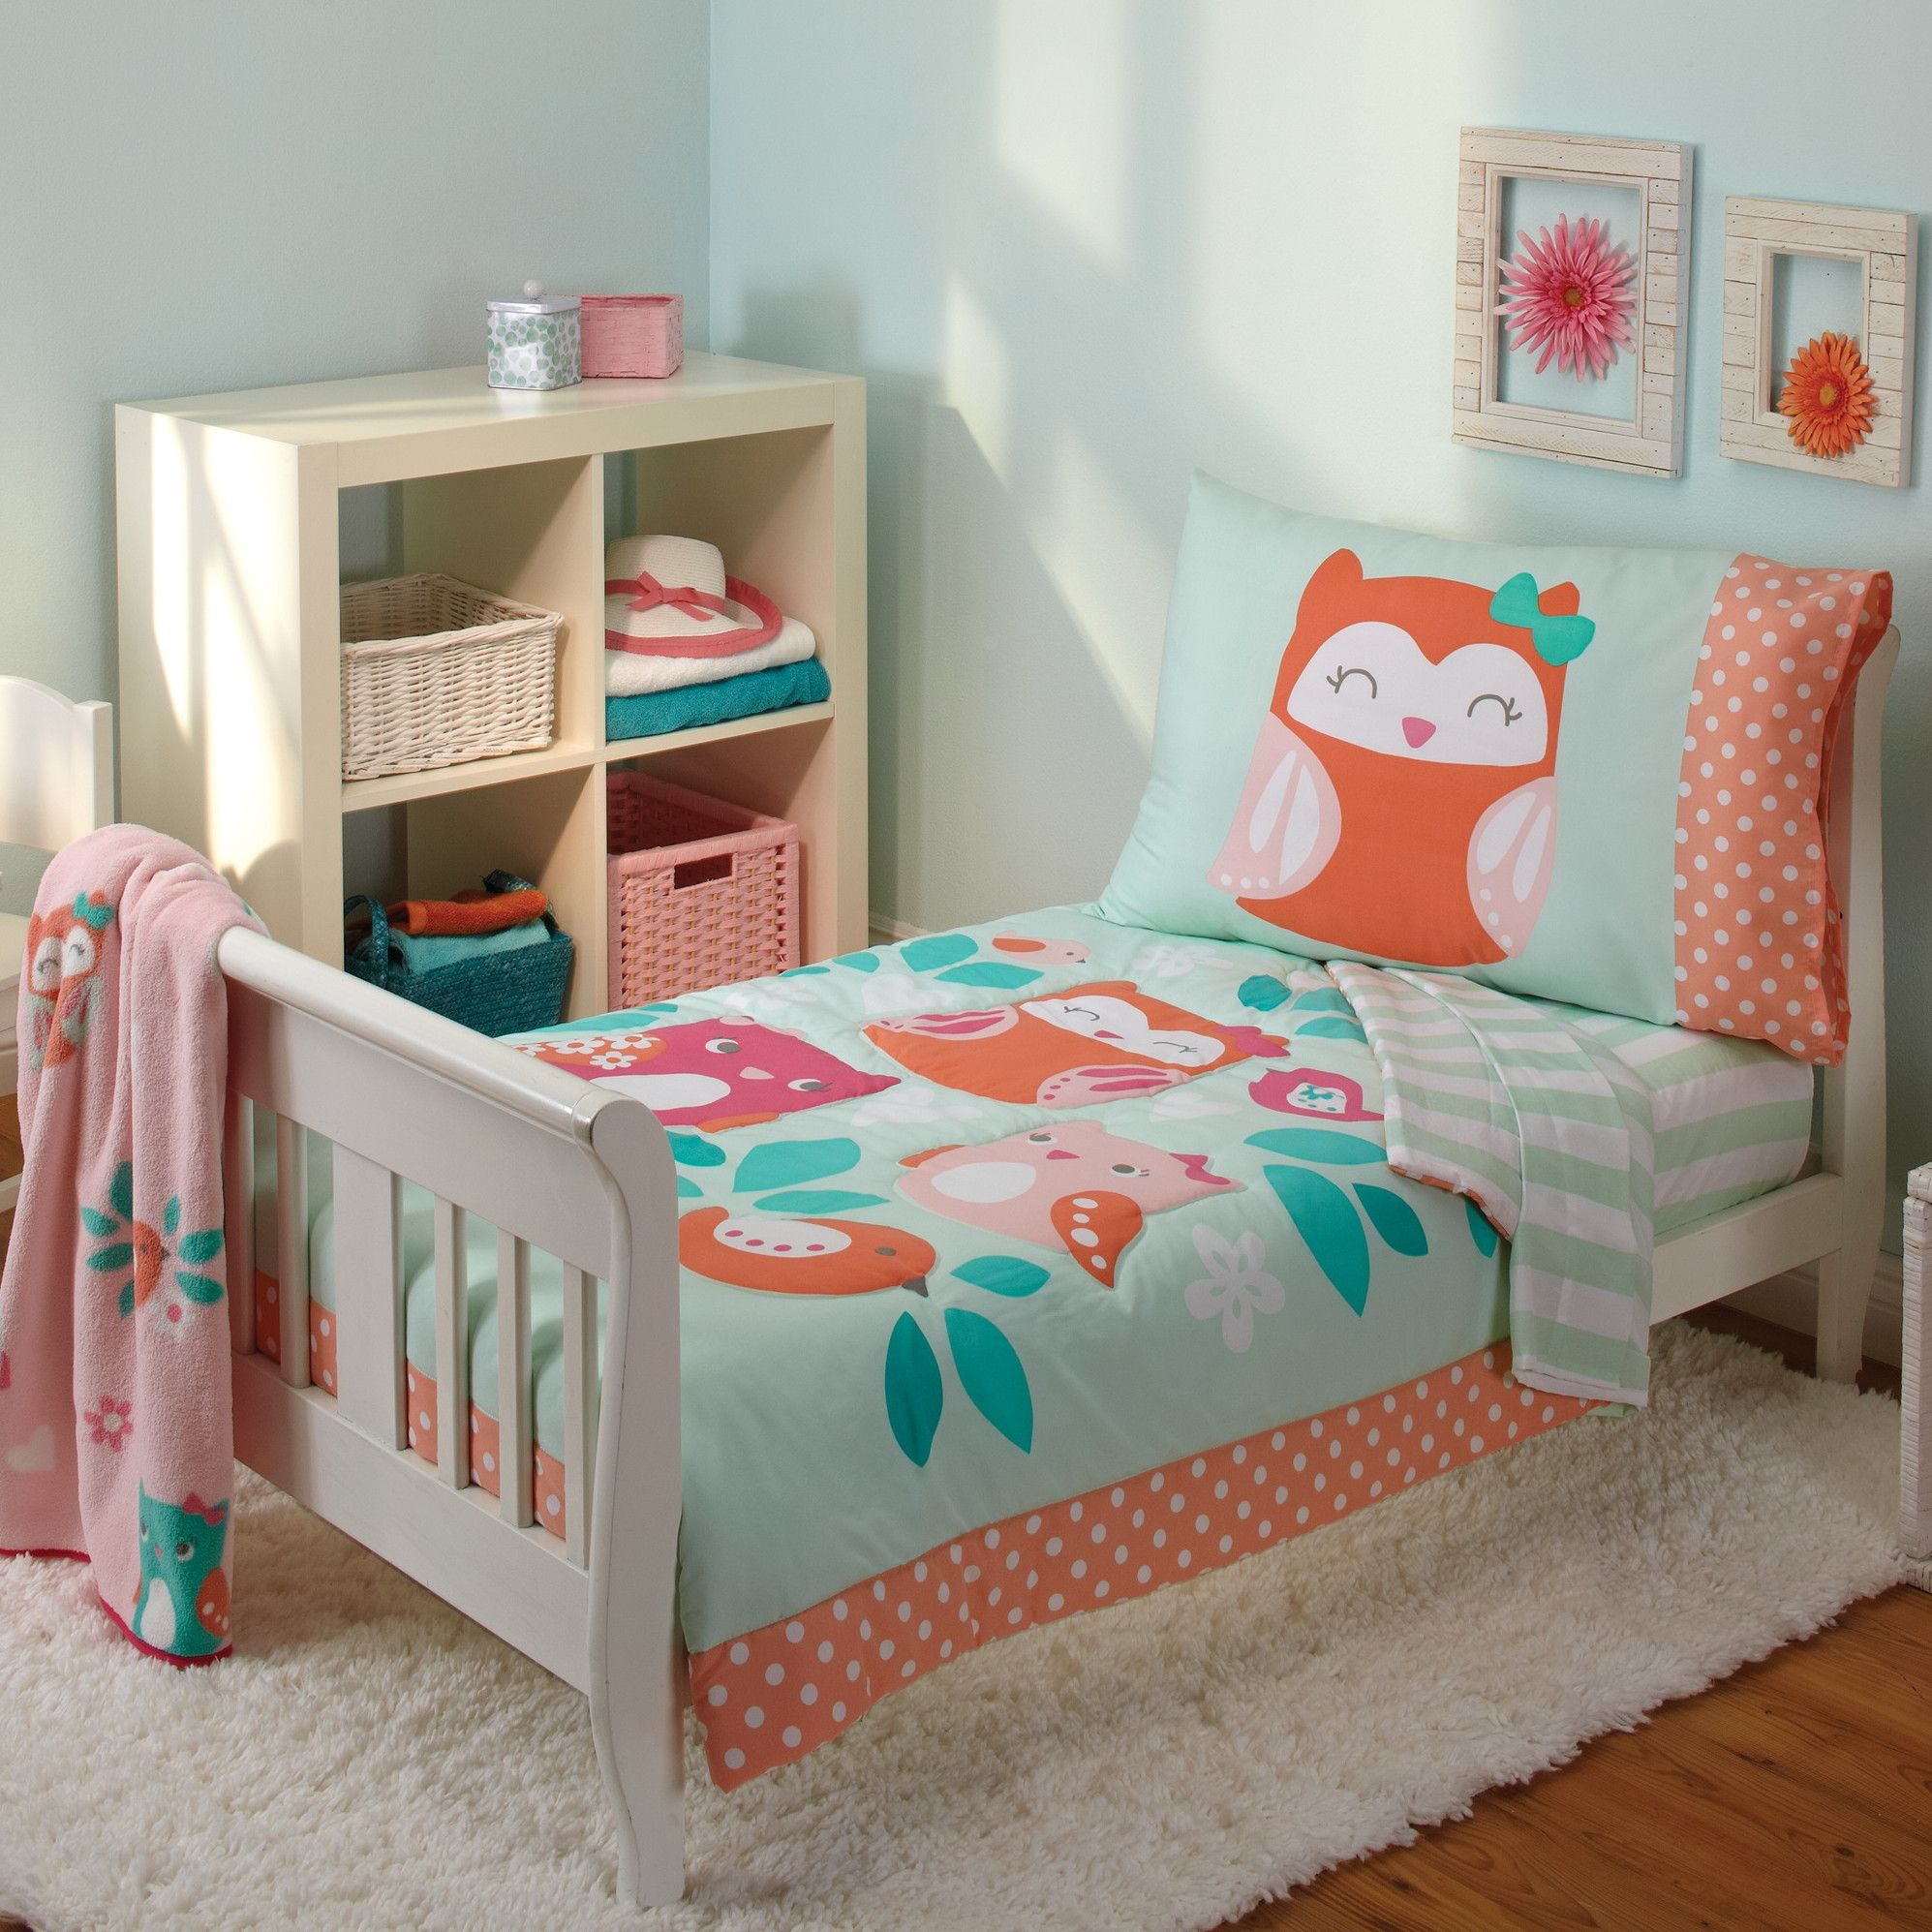 shop wayfair for toddler bedding sets to match every style and budget enjoy free shipping